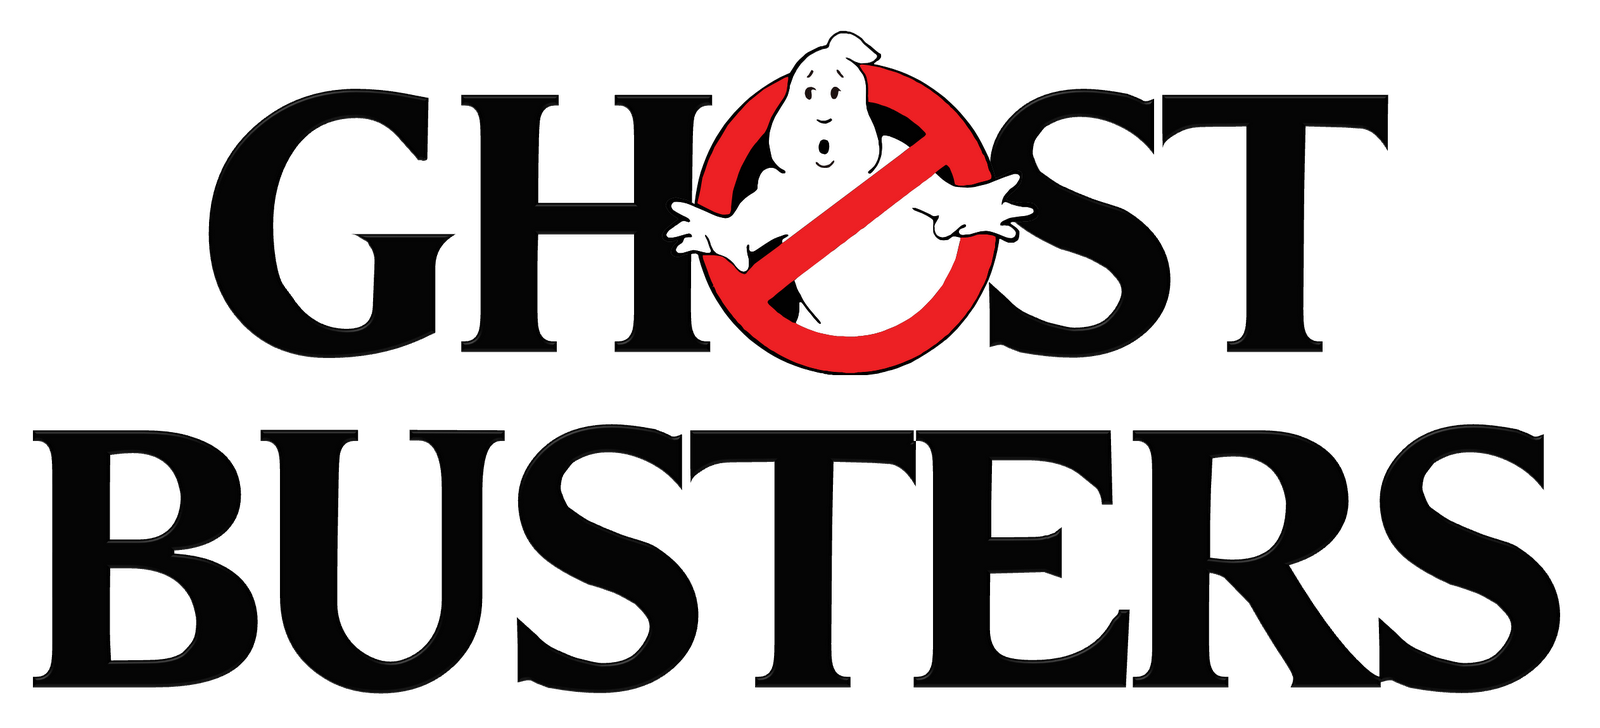 Enterprising image within ghostbusters logo printable